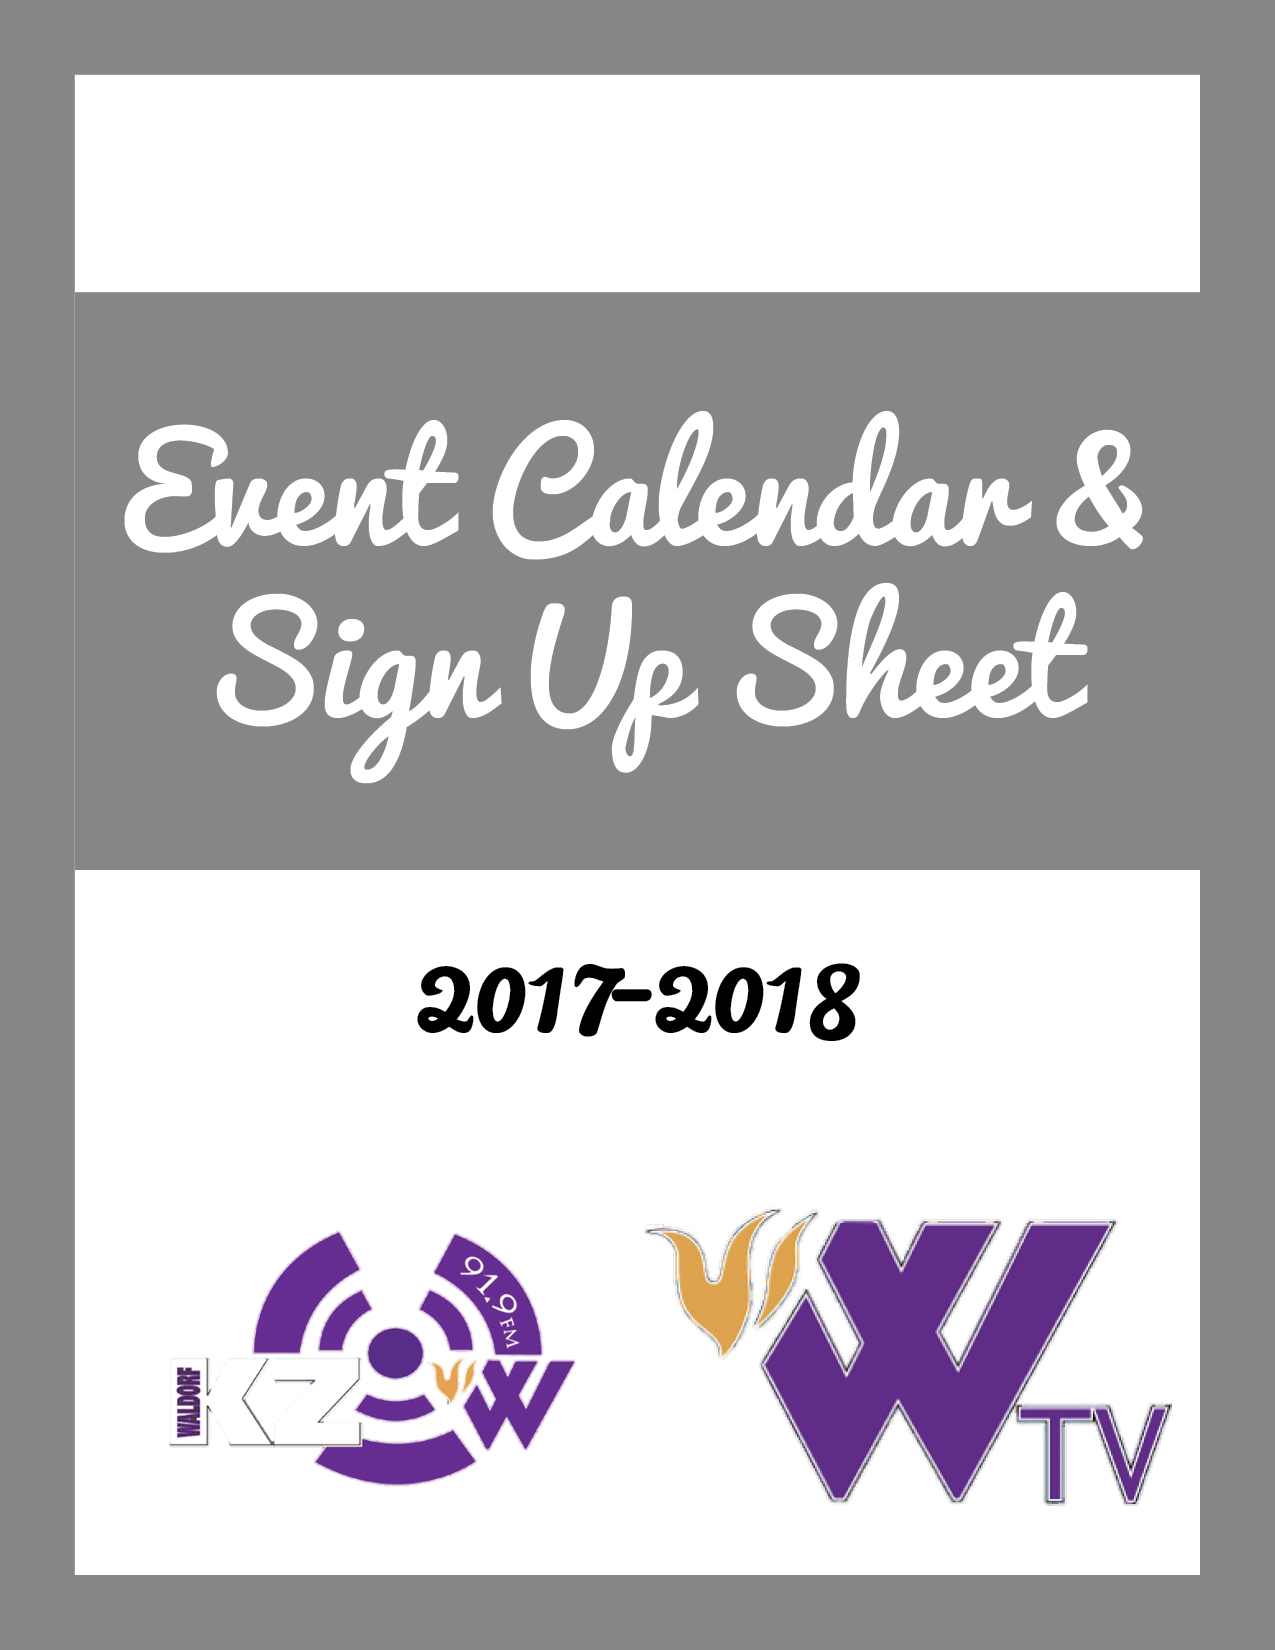 Cover page of event calendar and sign up sheet